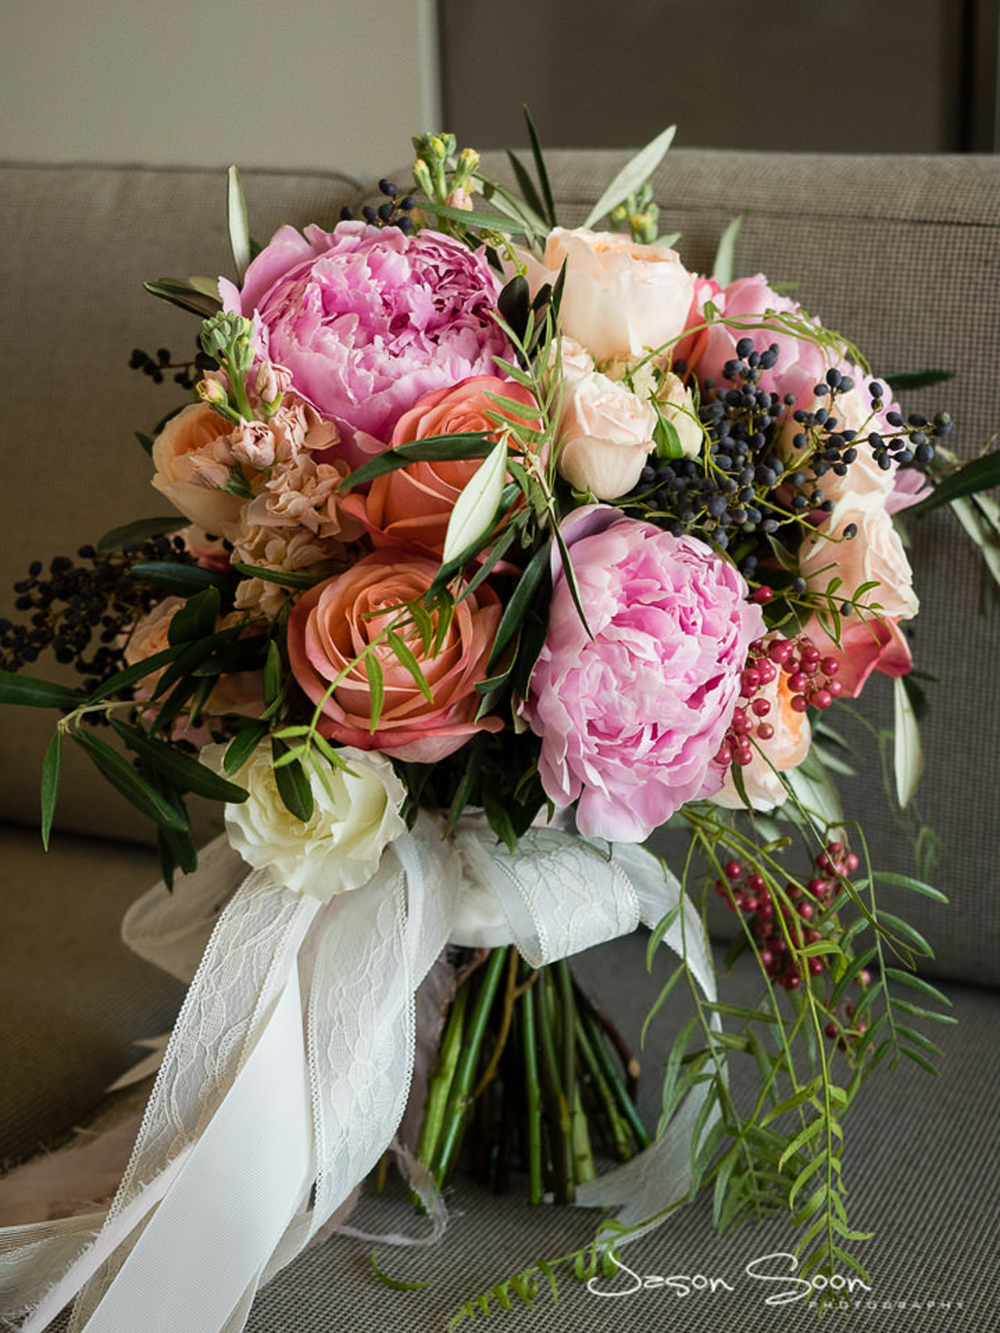 Perth-Wedding-Florist---Signature-Floral-Design.png